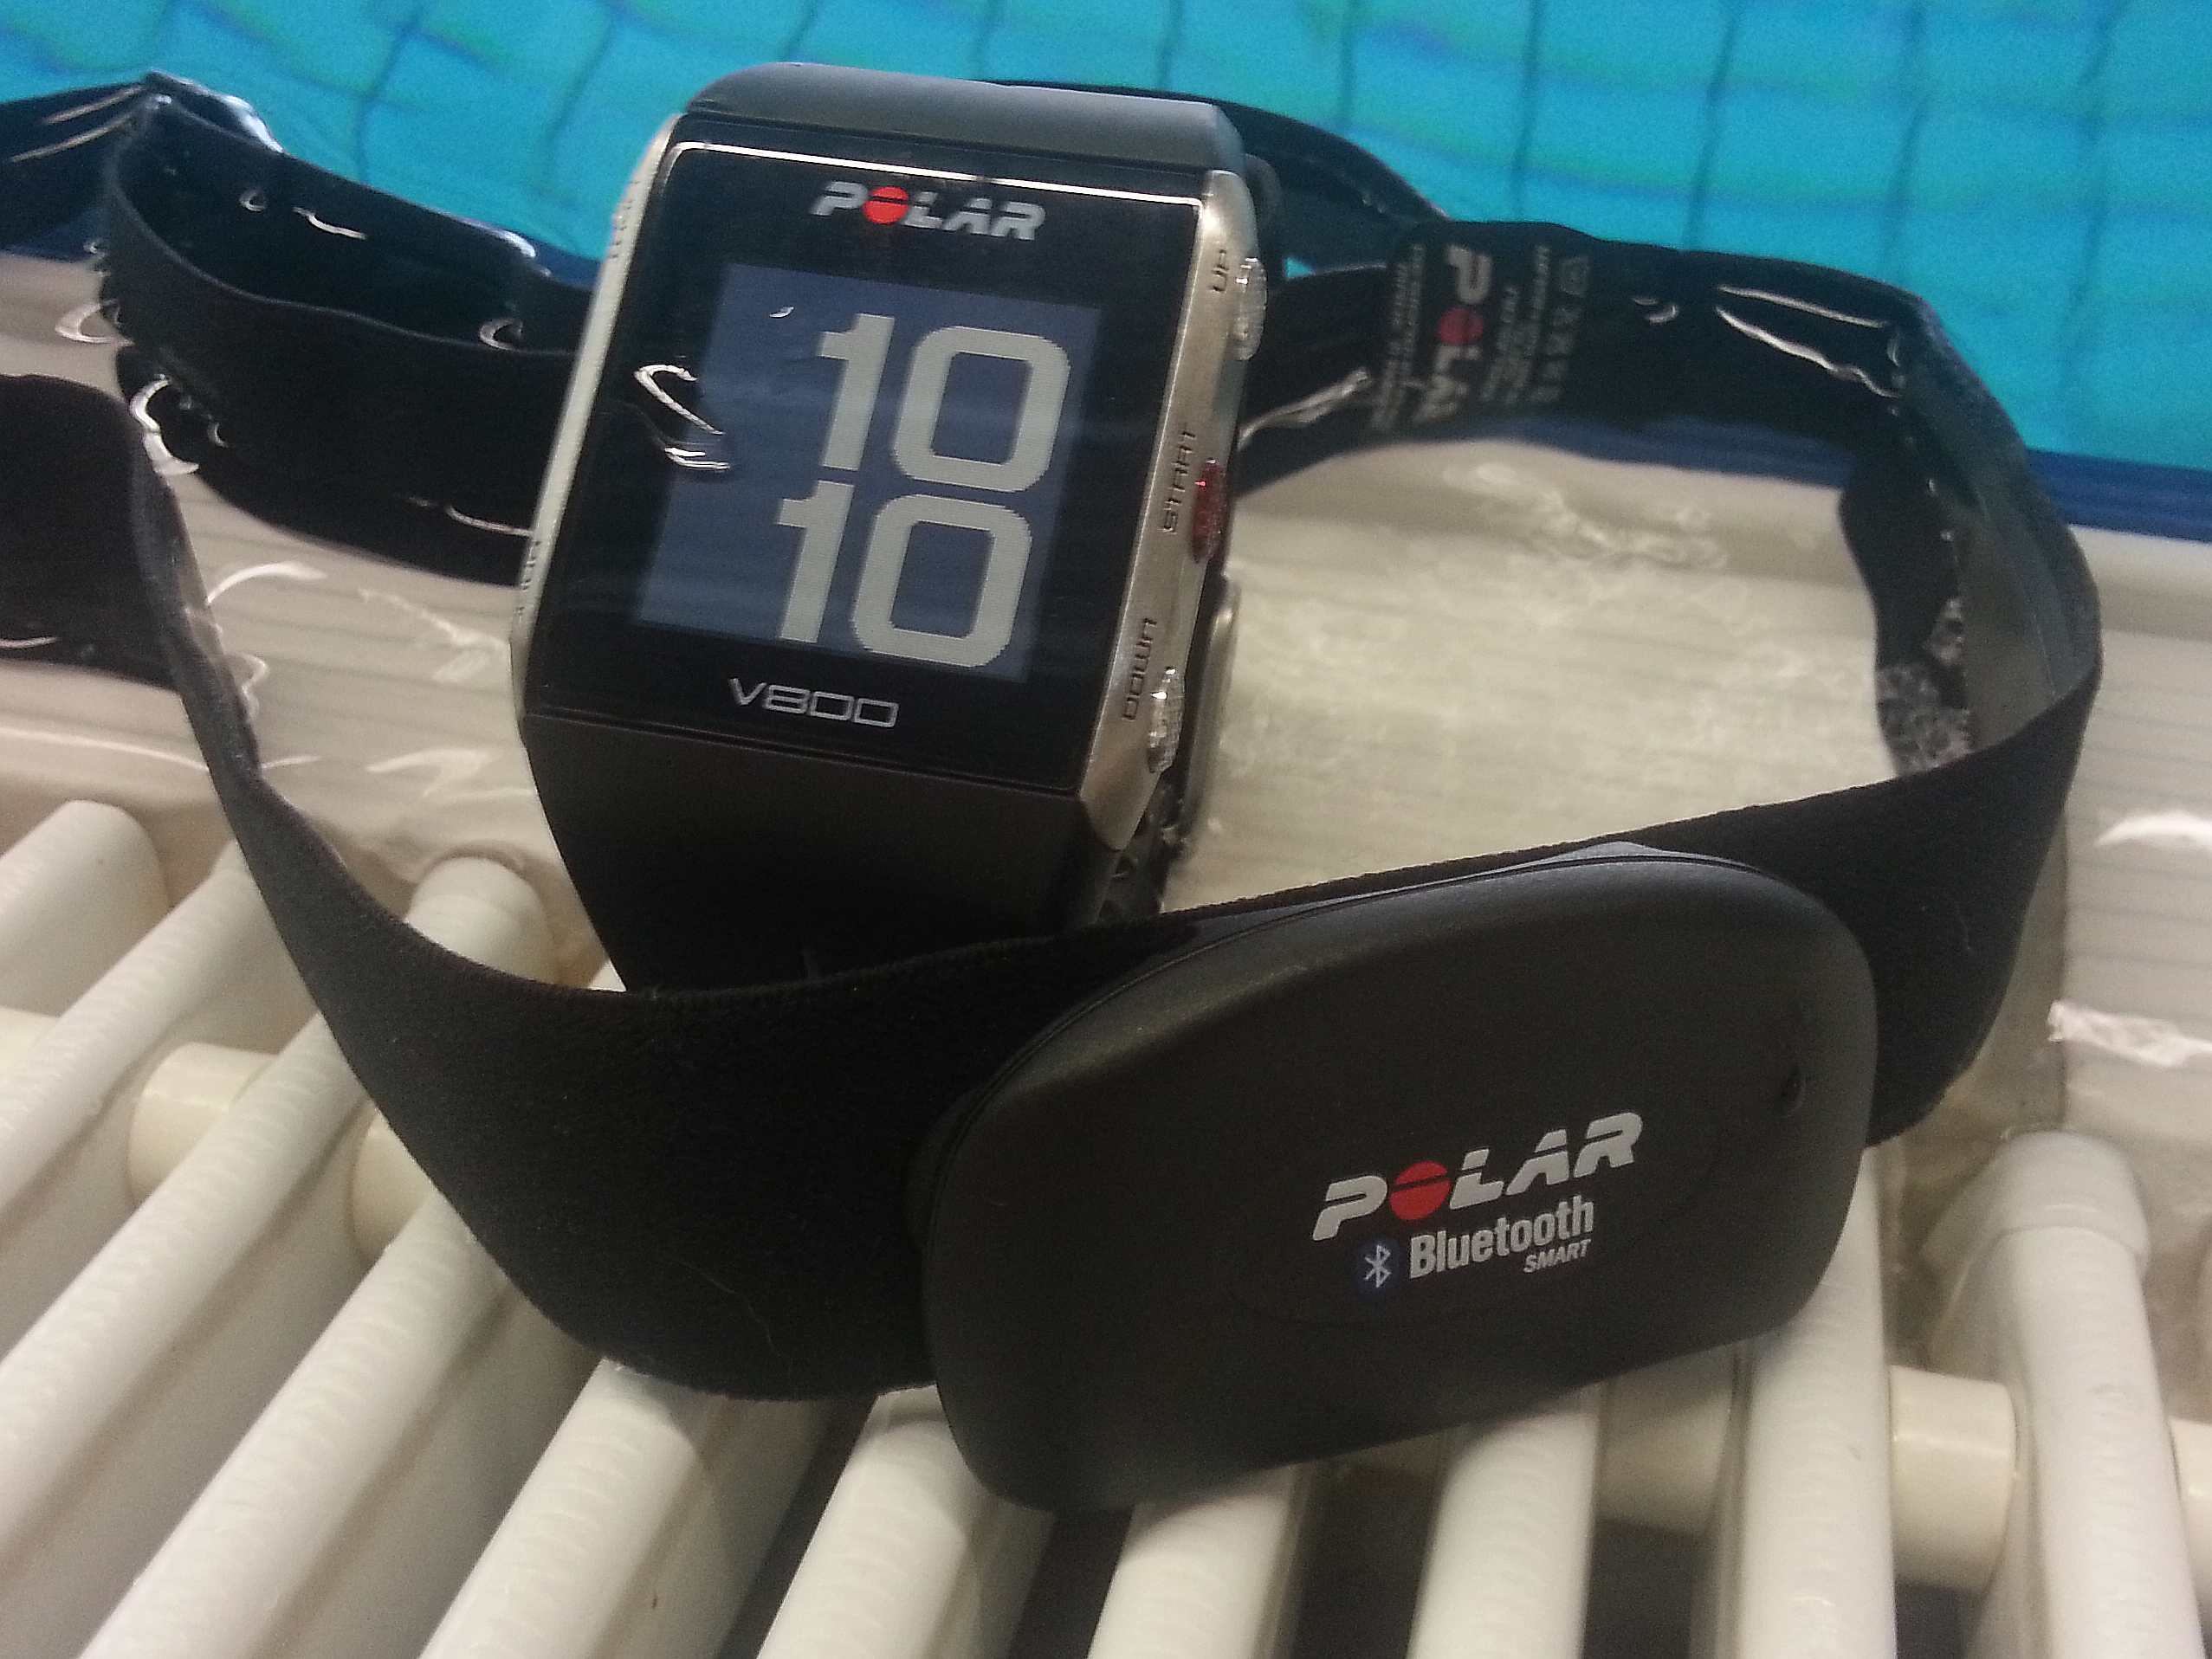 v800 by the pool